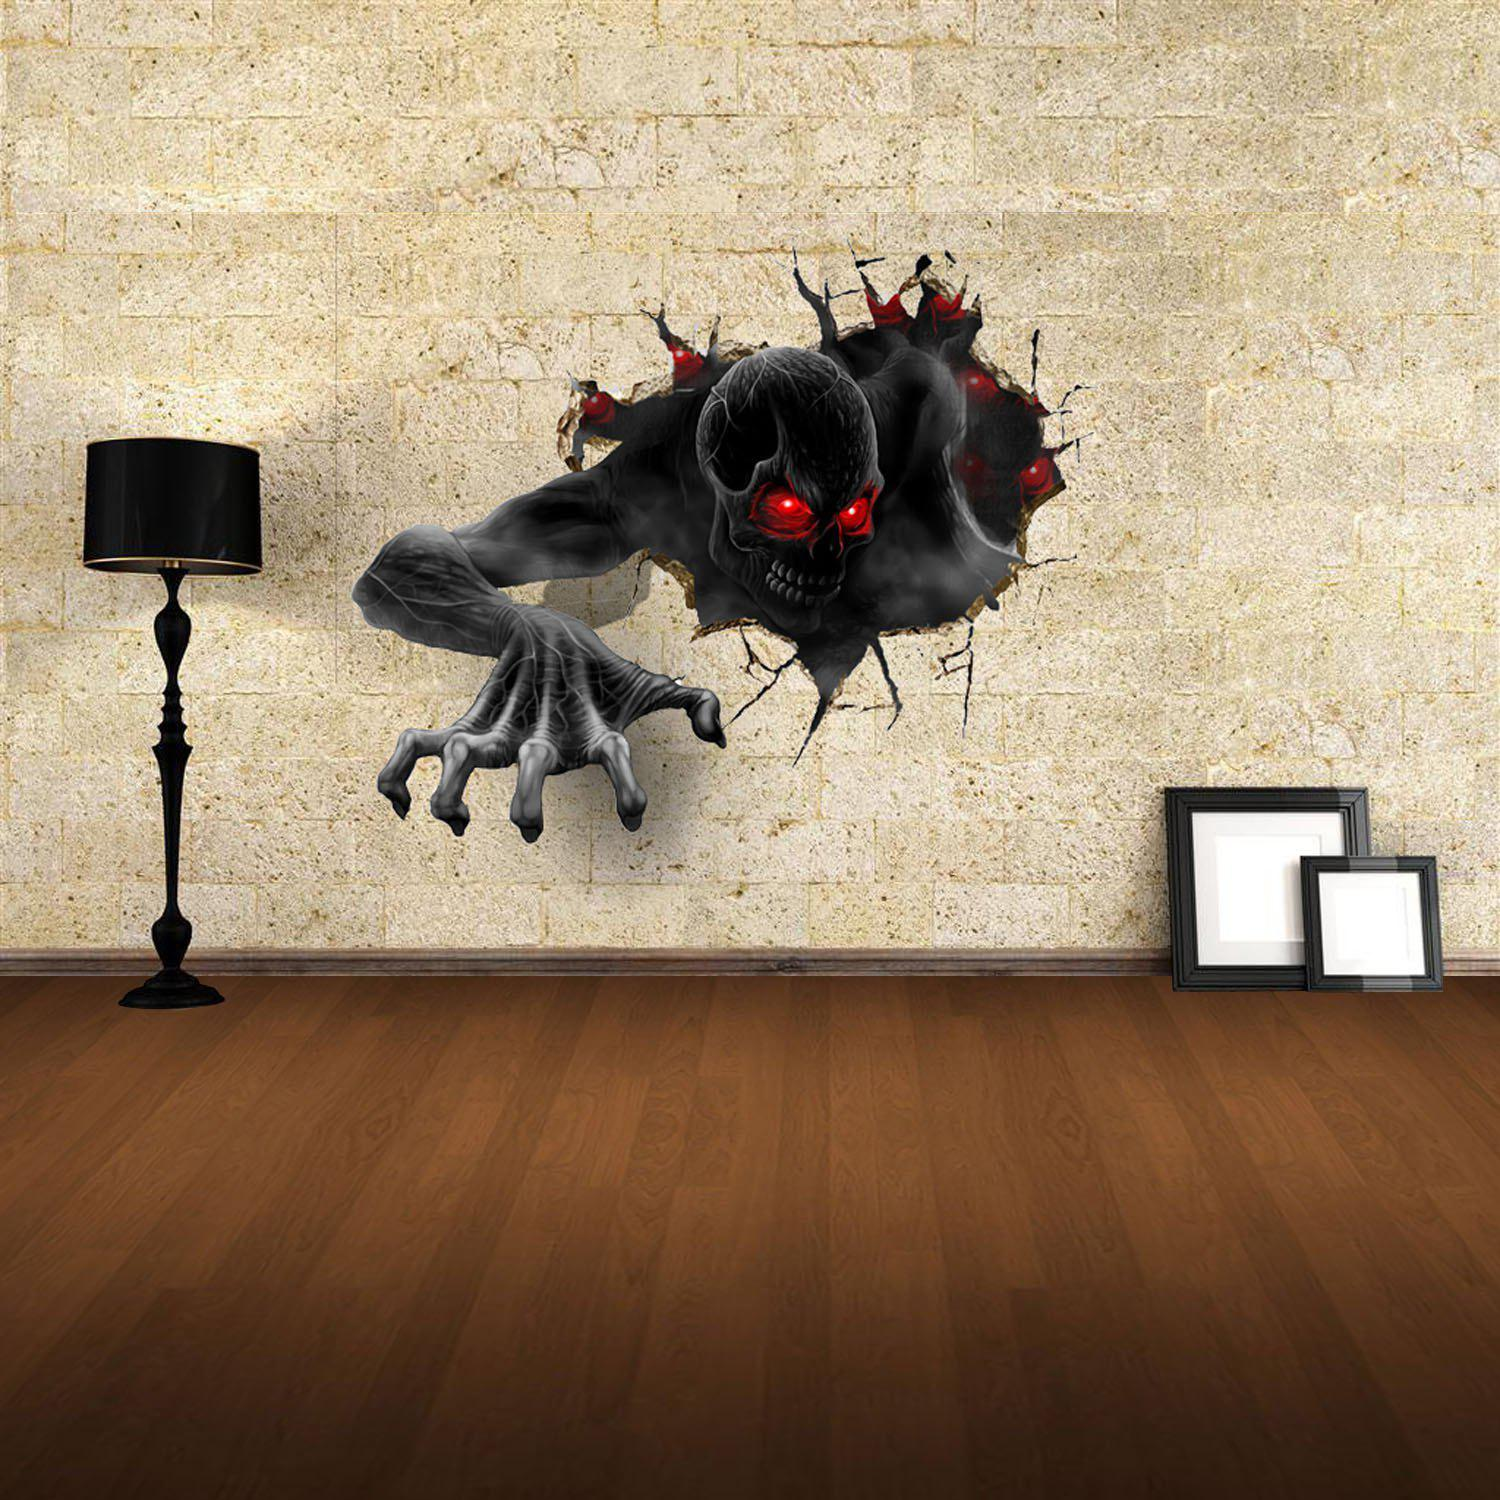 3D Wall Stickers Devil Style Wall Decals Home Appliances Decor ideal lux подвесная люстра ideal lux violette sp6